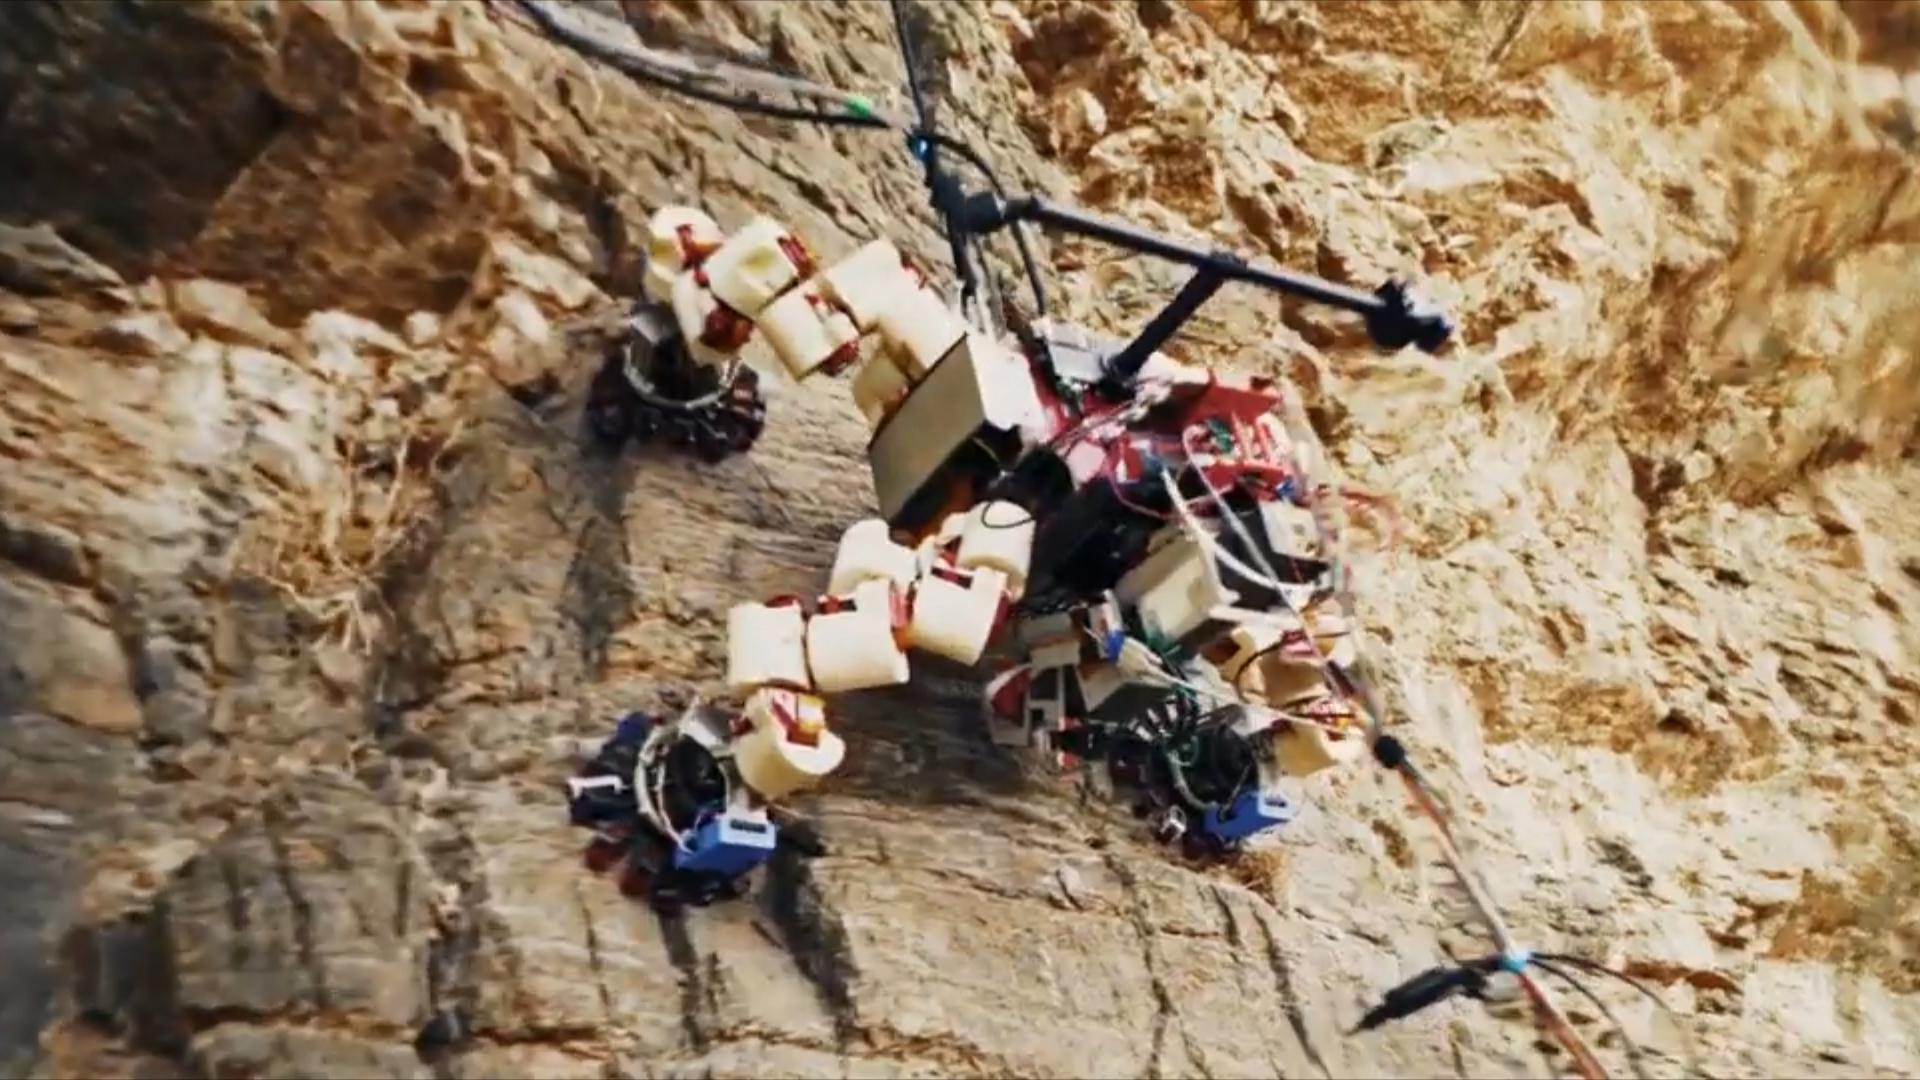 NASA's climbing robot will look for life on other planets